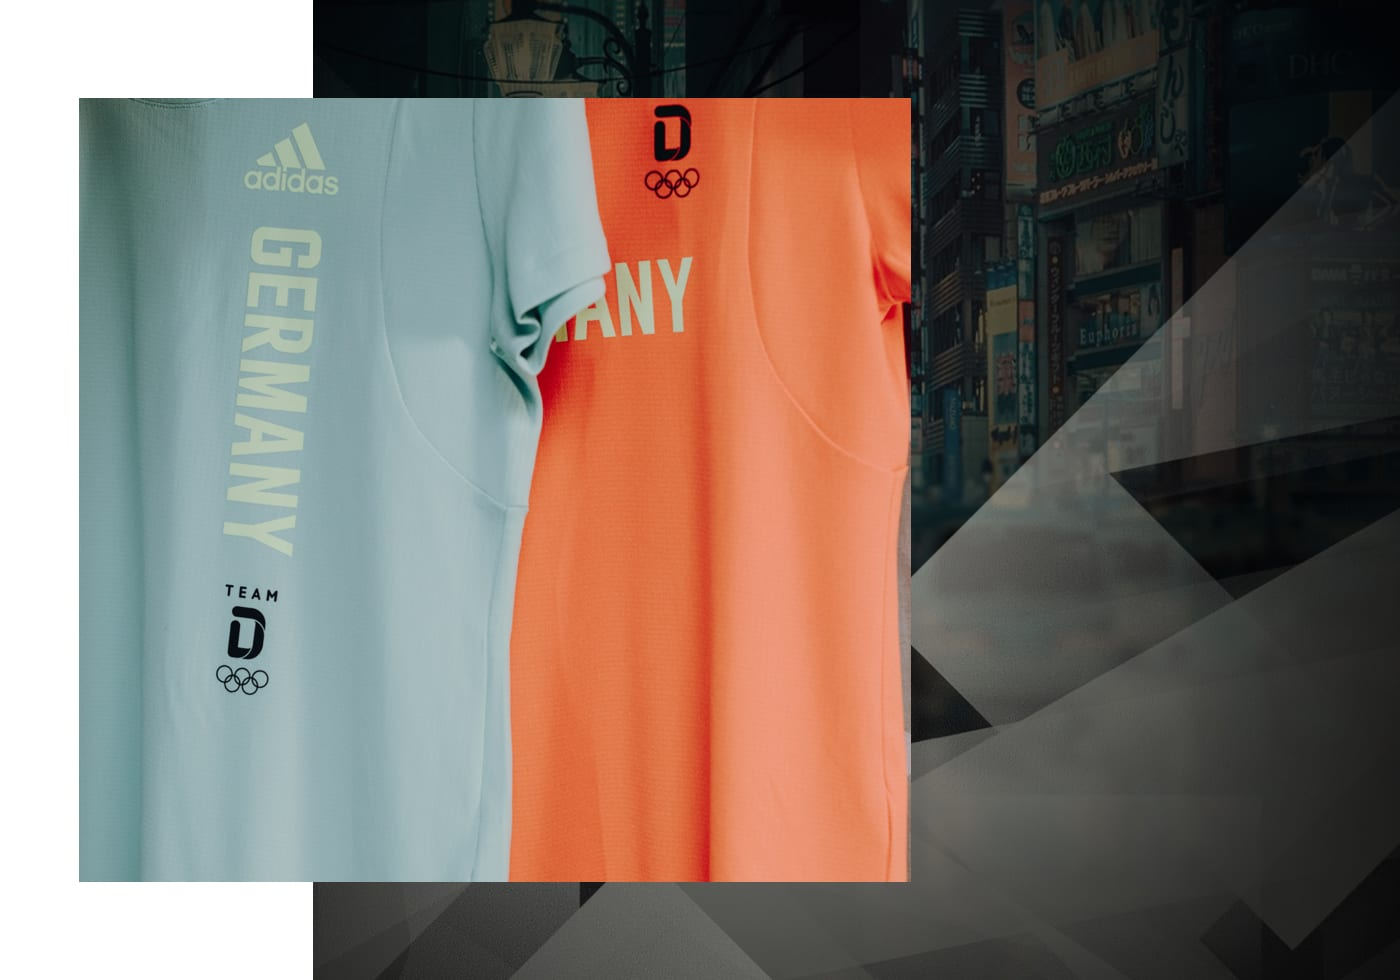 Close-up image of adidas Team D kit with eagle head motif.